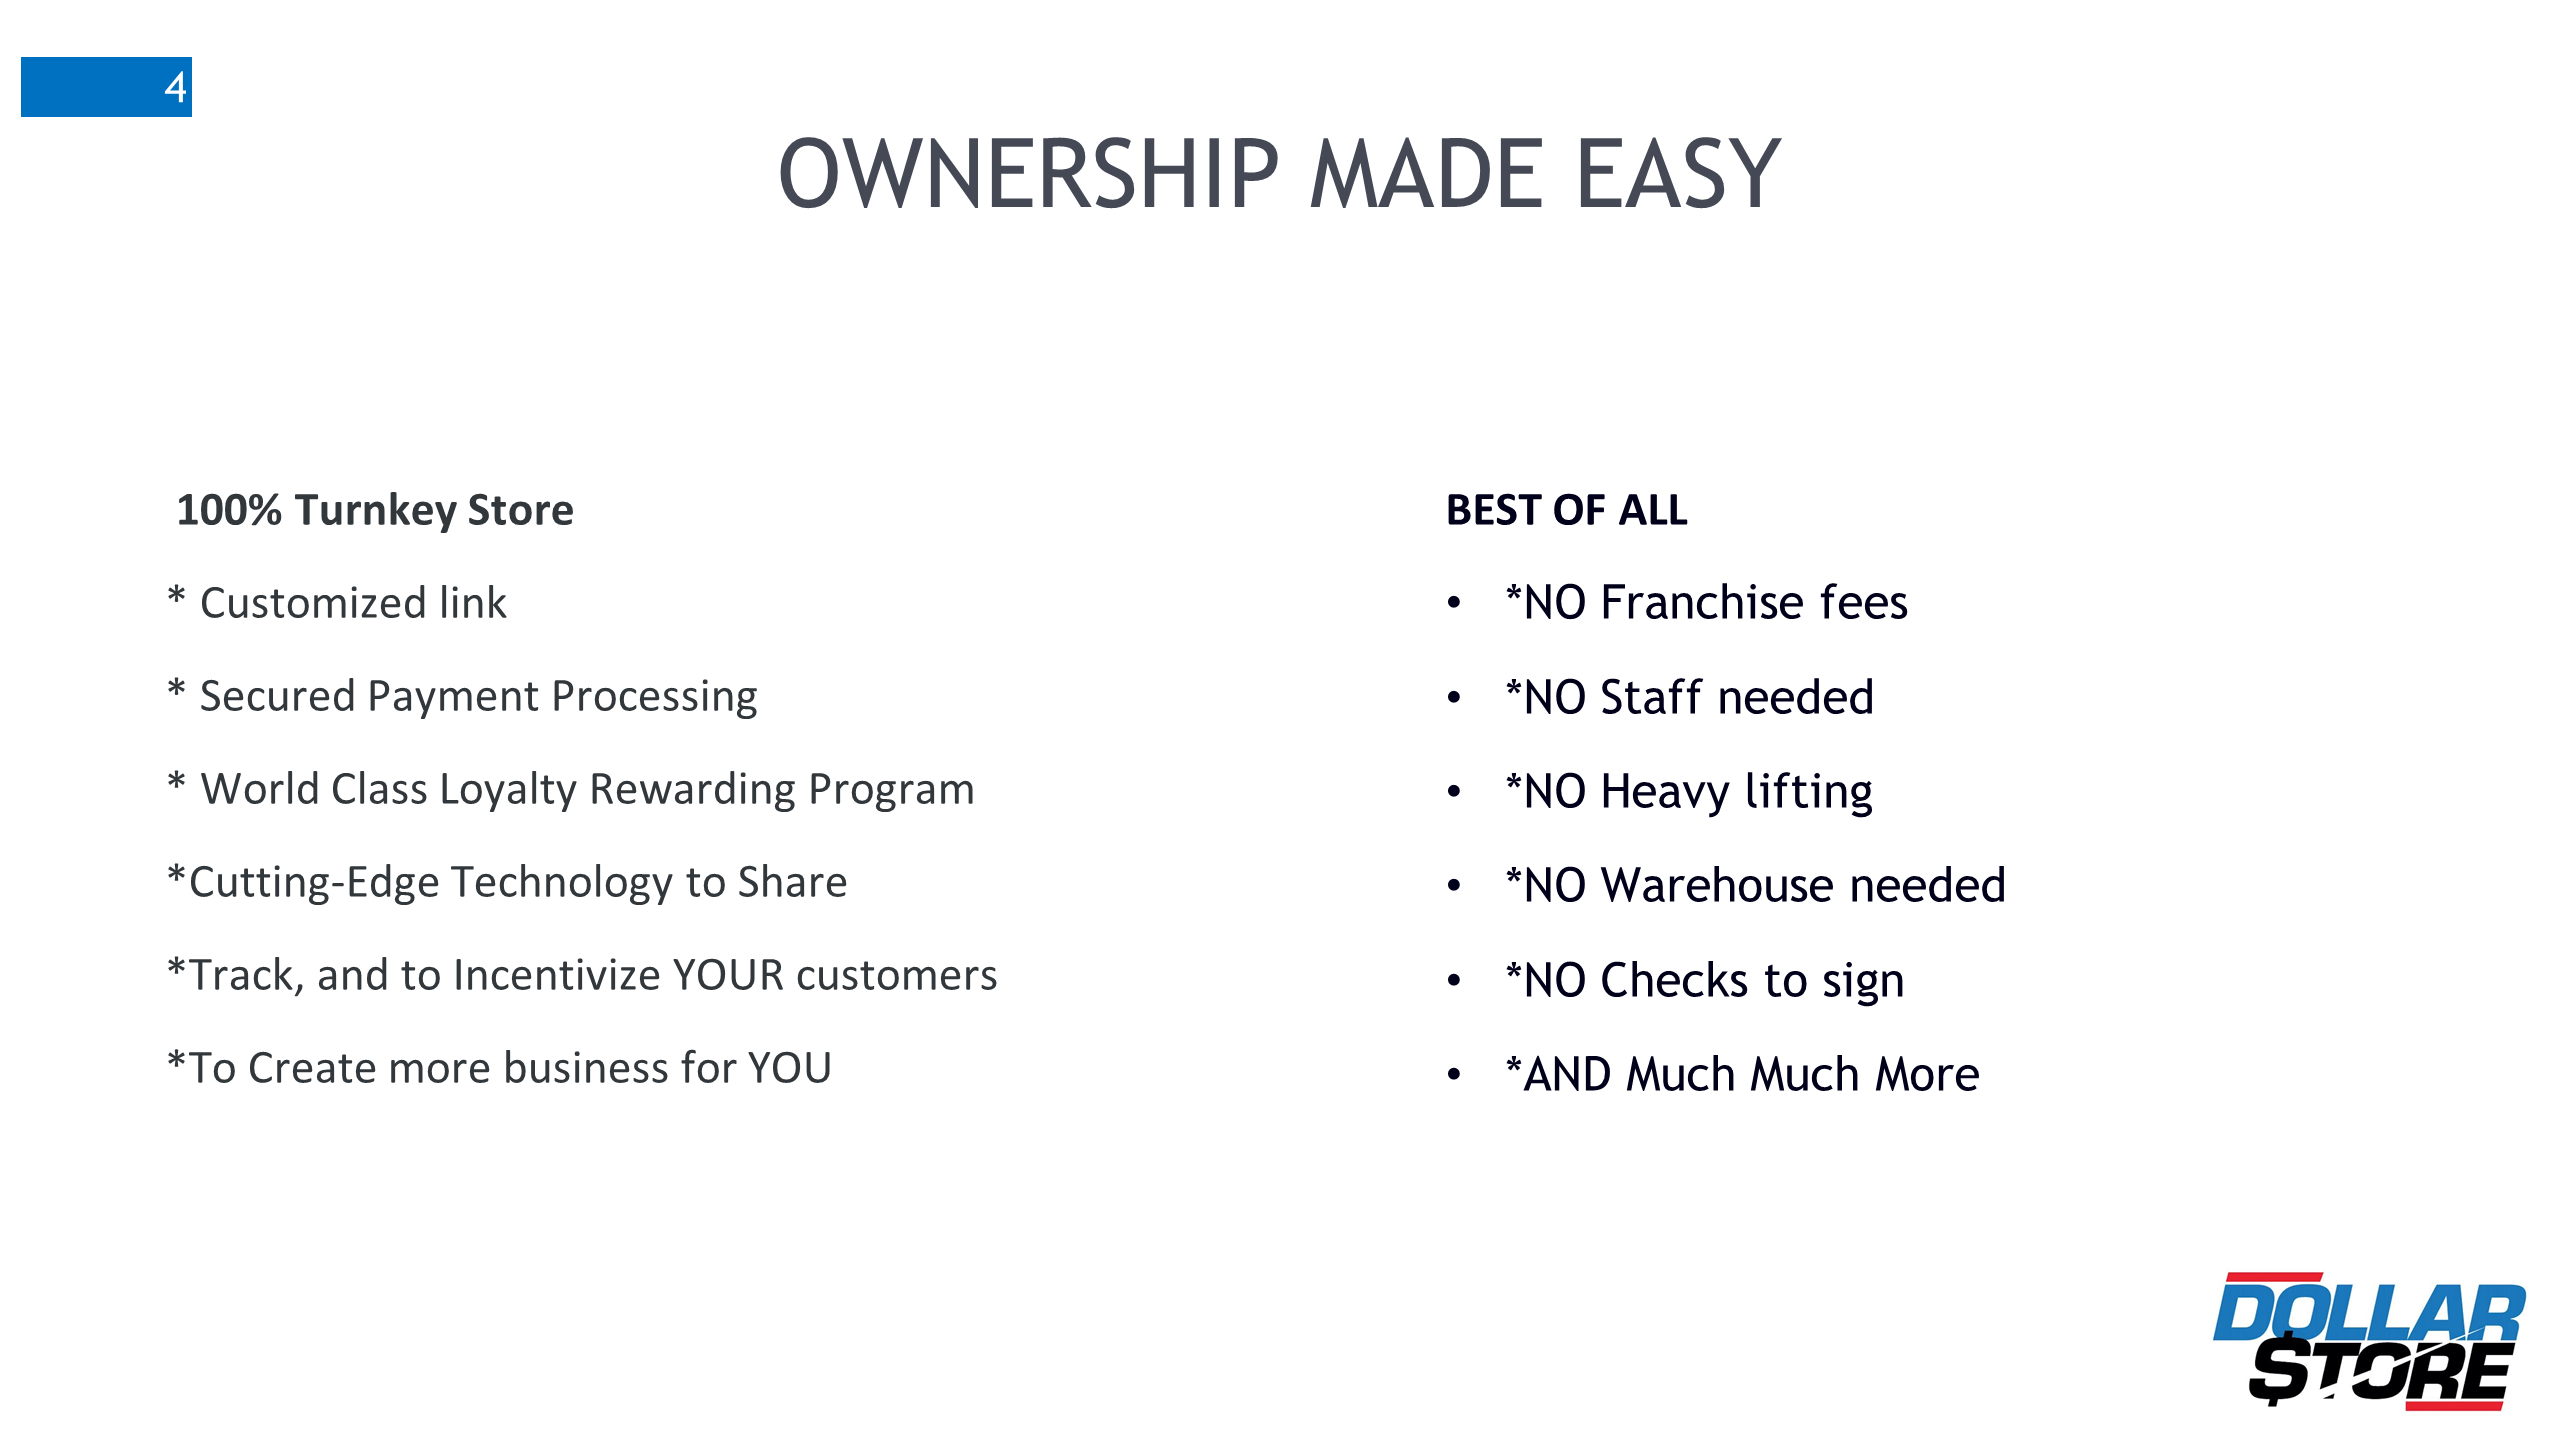 DollarStore ownership made easy